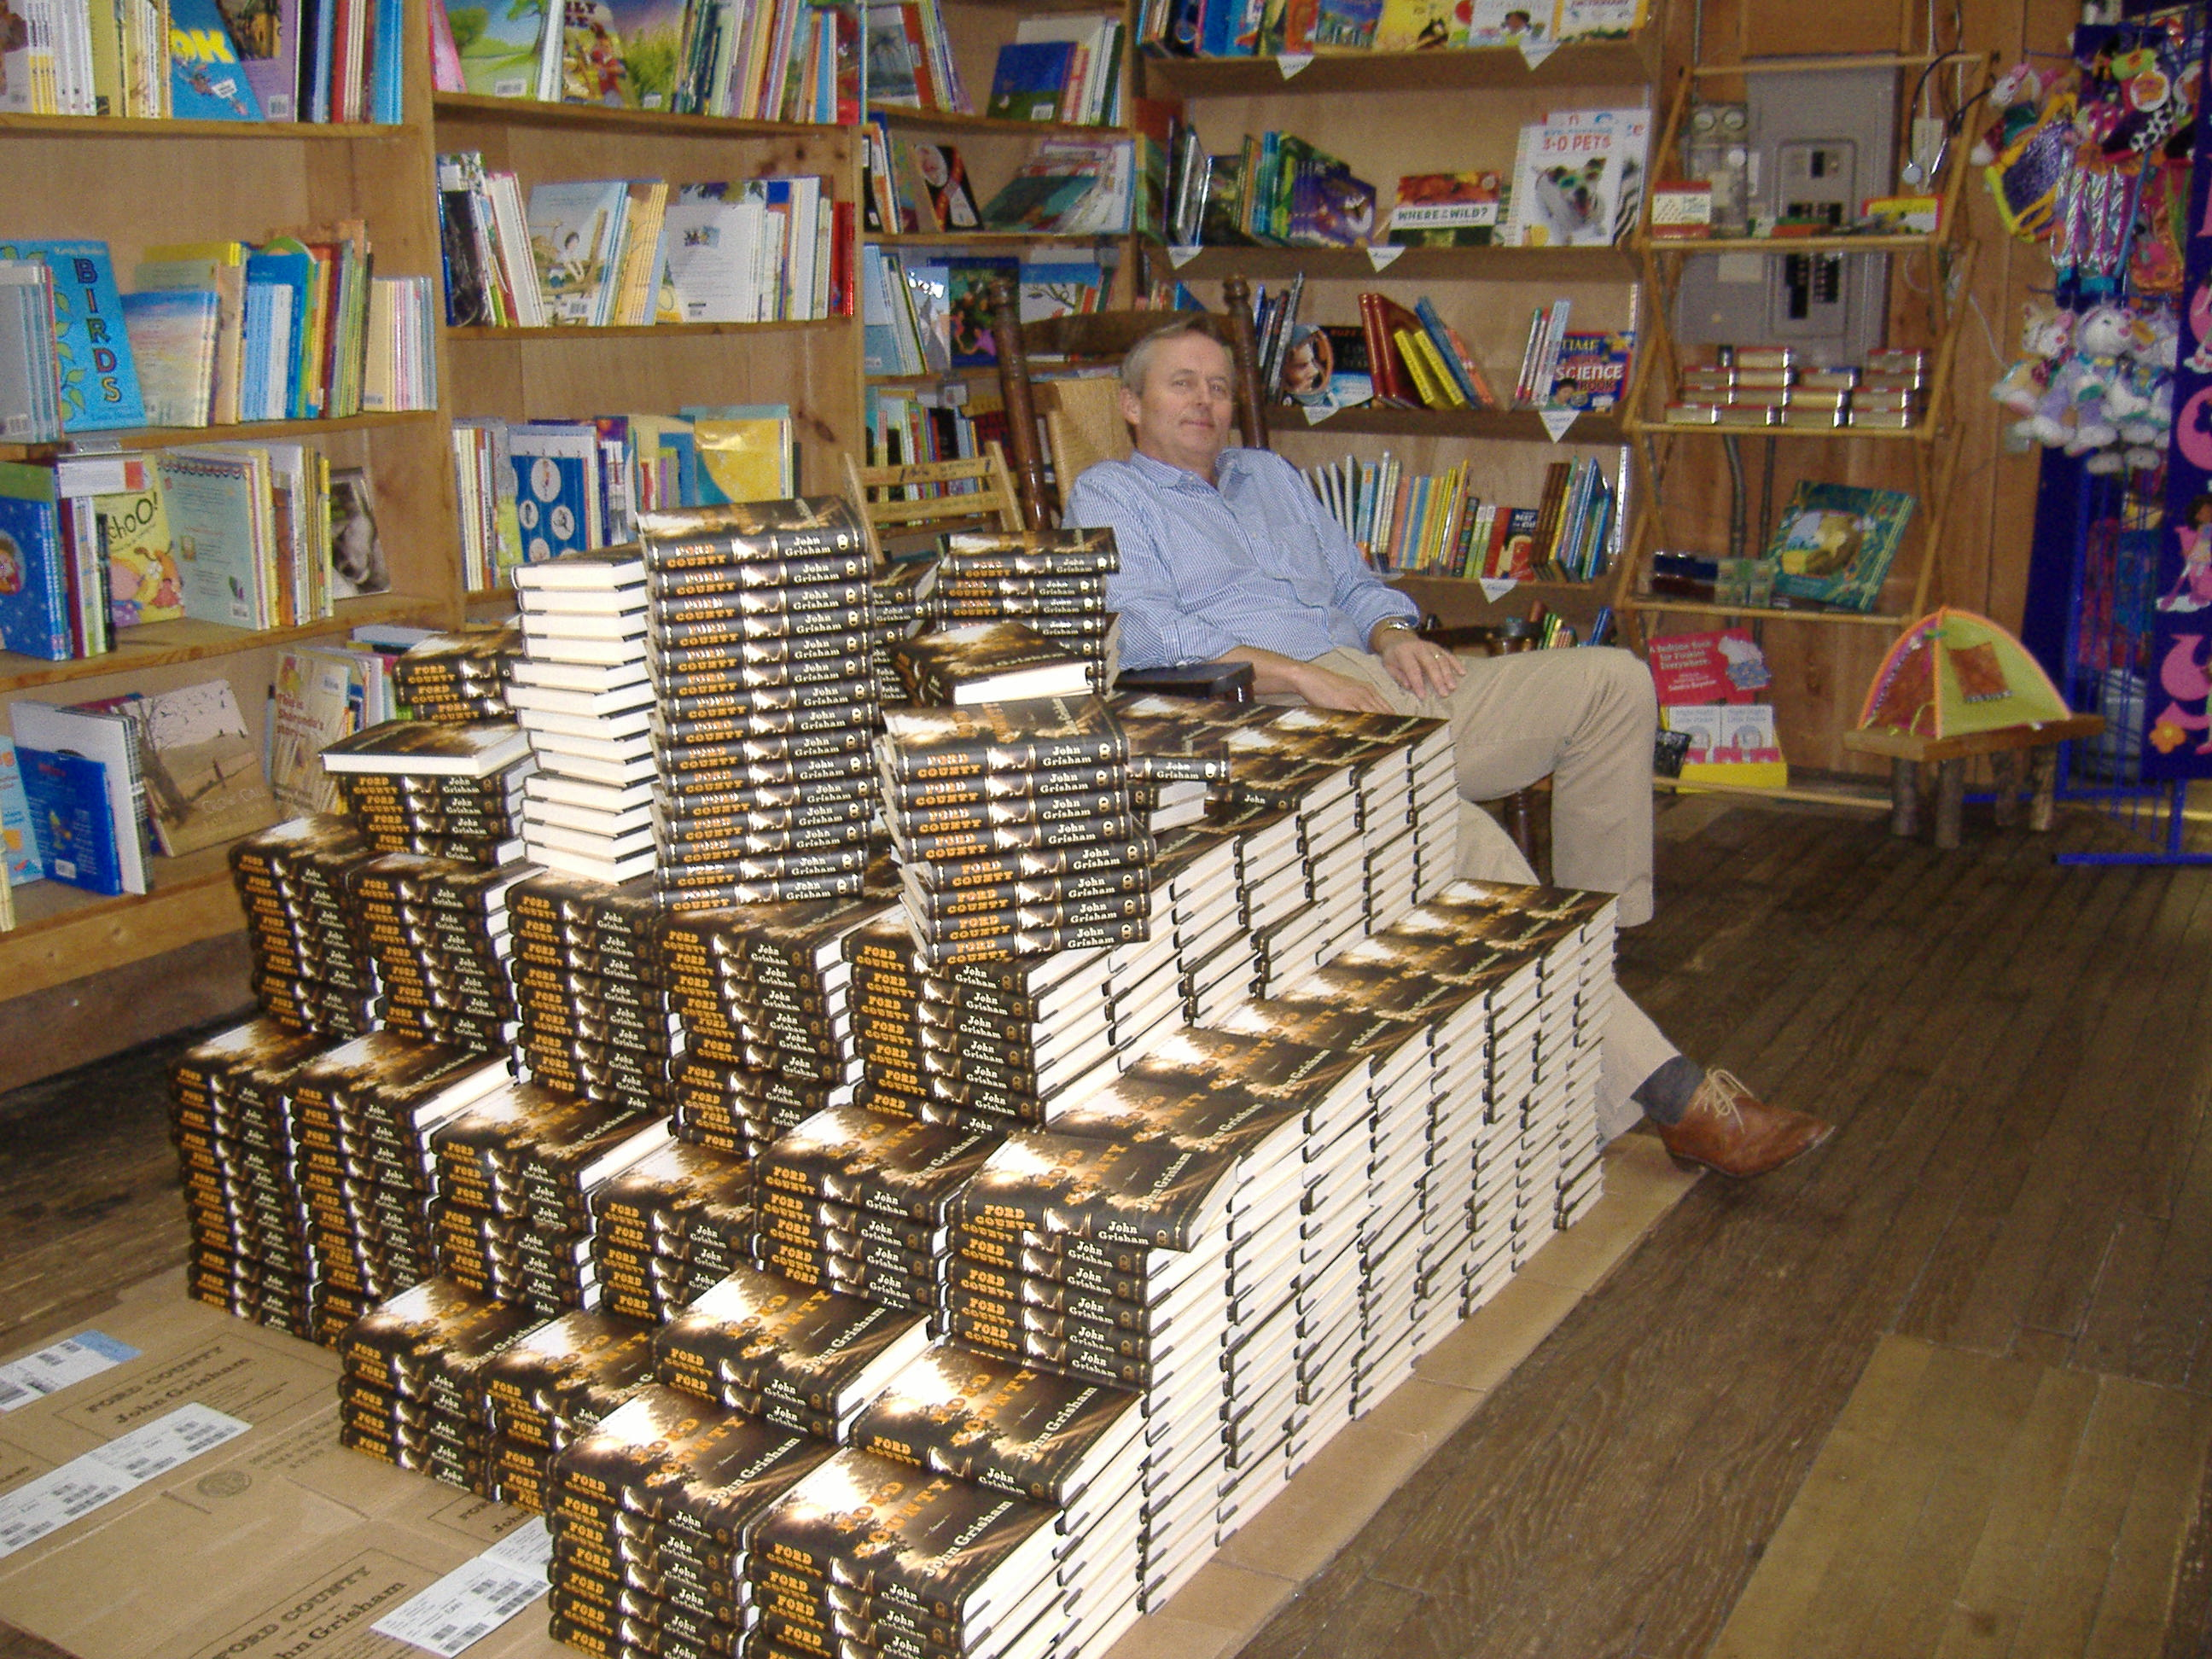 John Grisham at a book signing in the store.